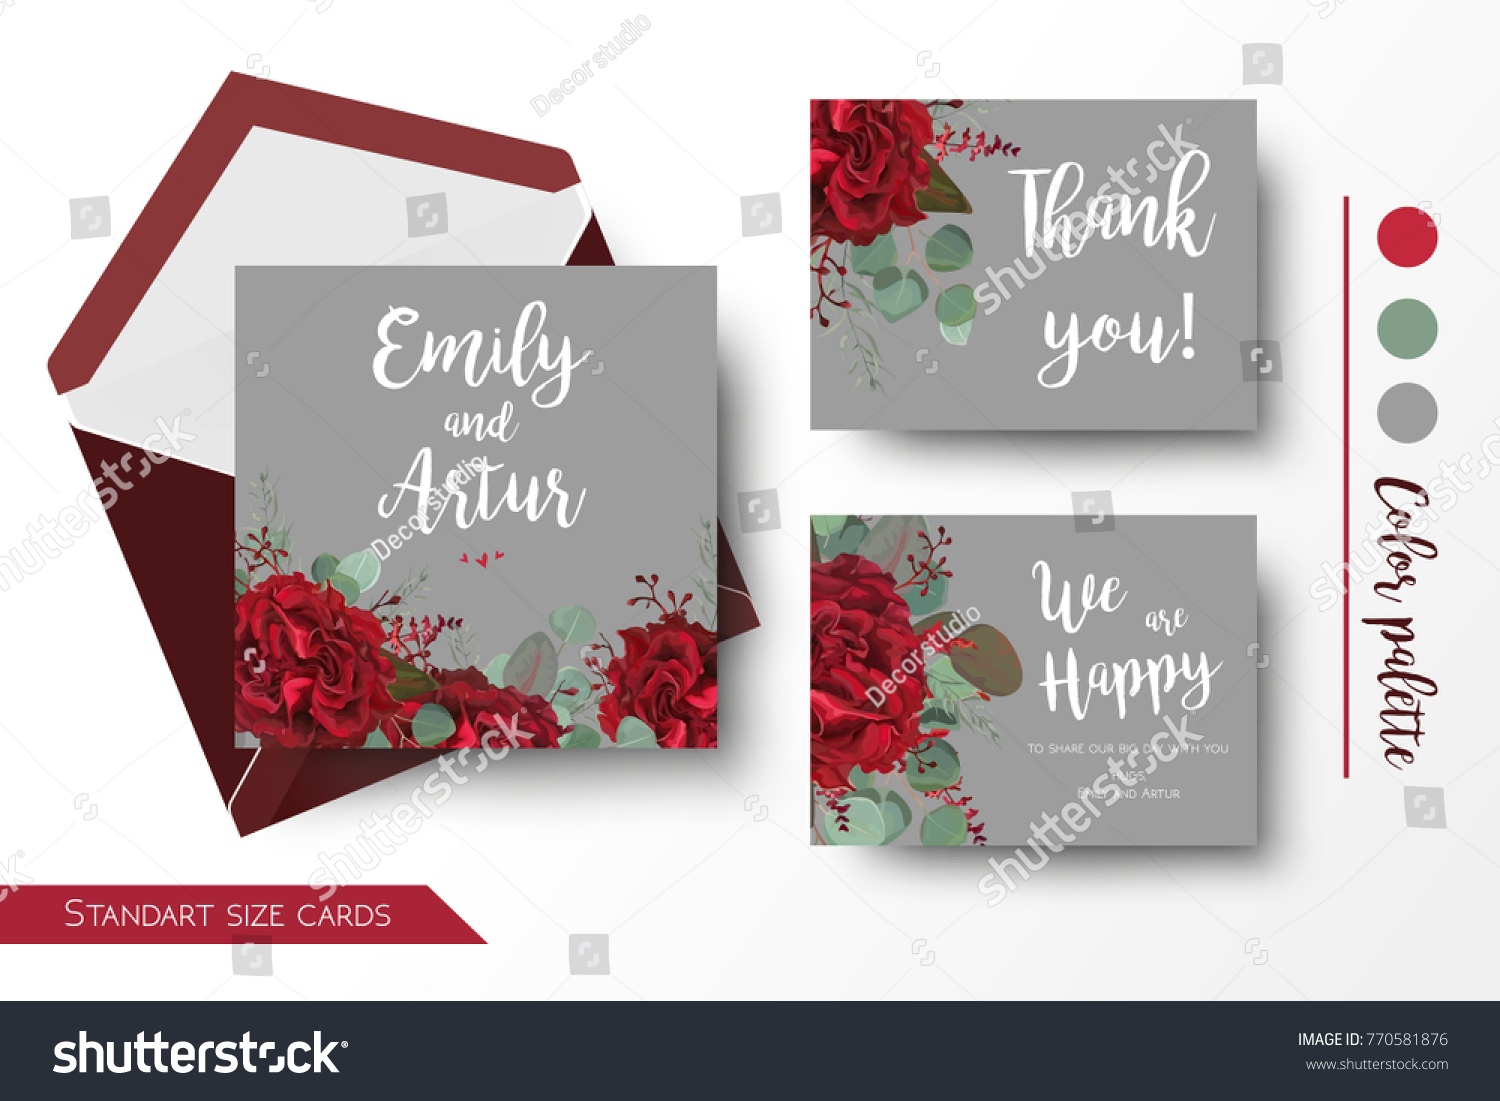 Wedding Invite Invitation Thank You Greeting Stock Vector (Royalty ...